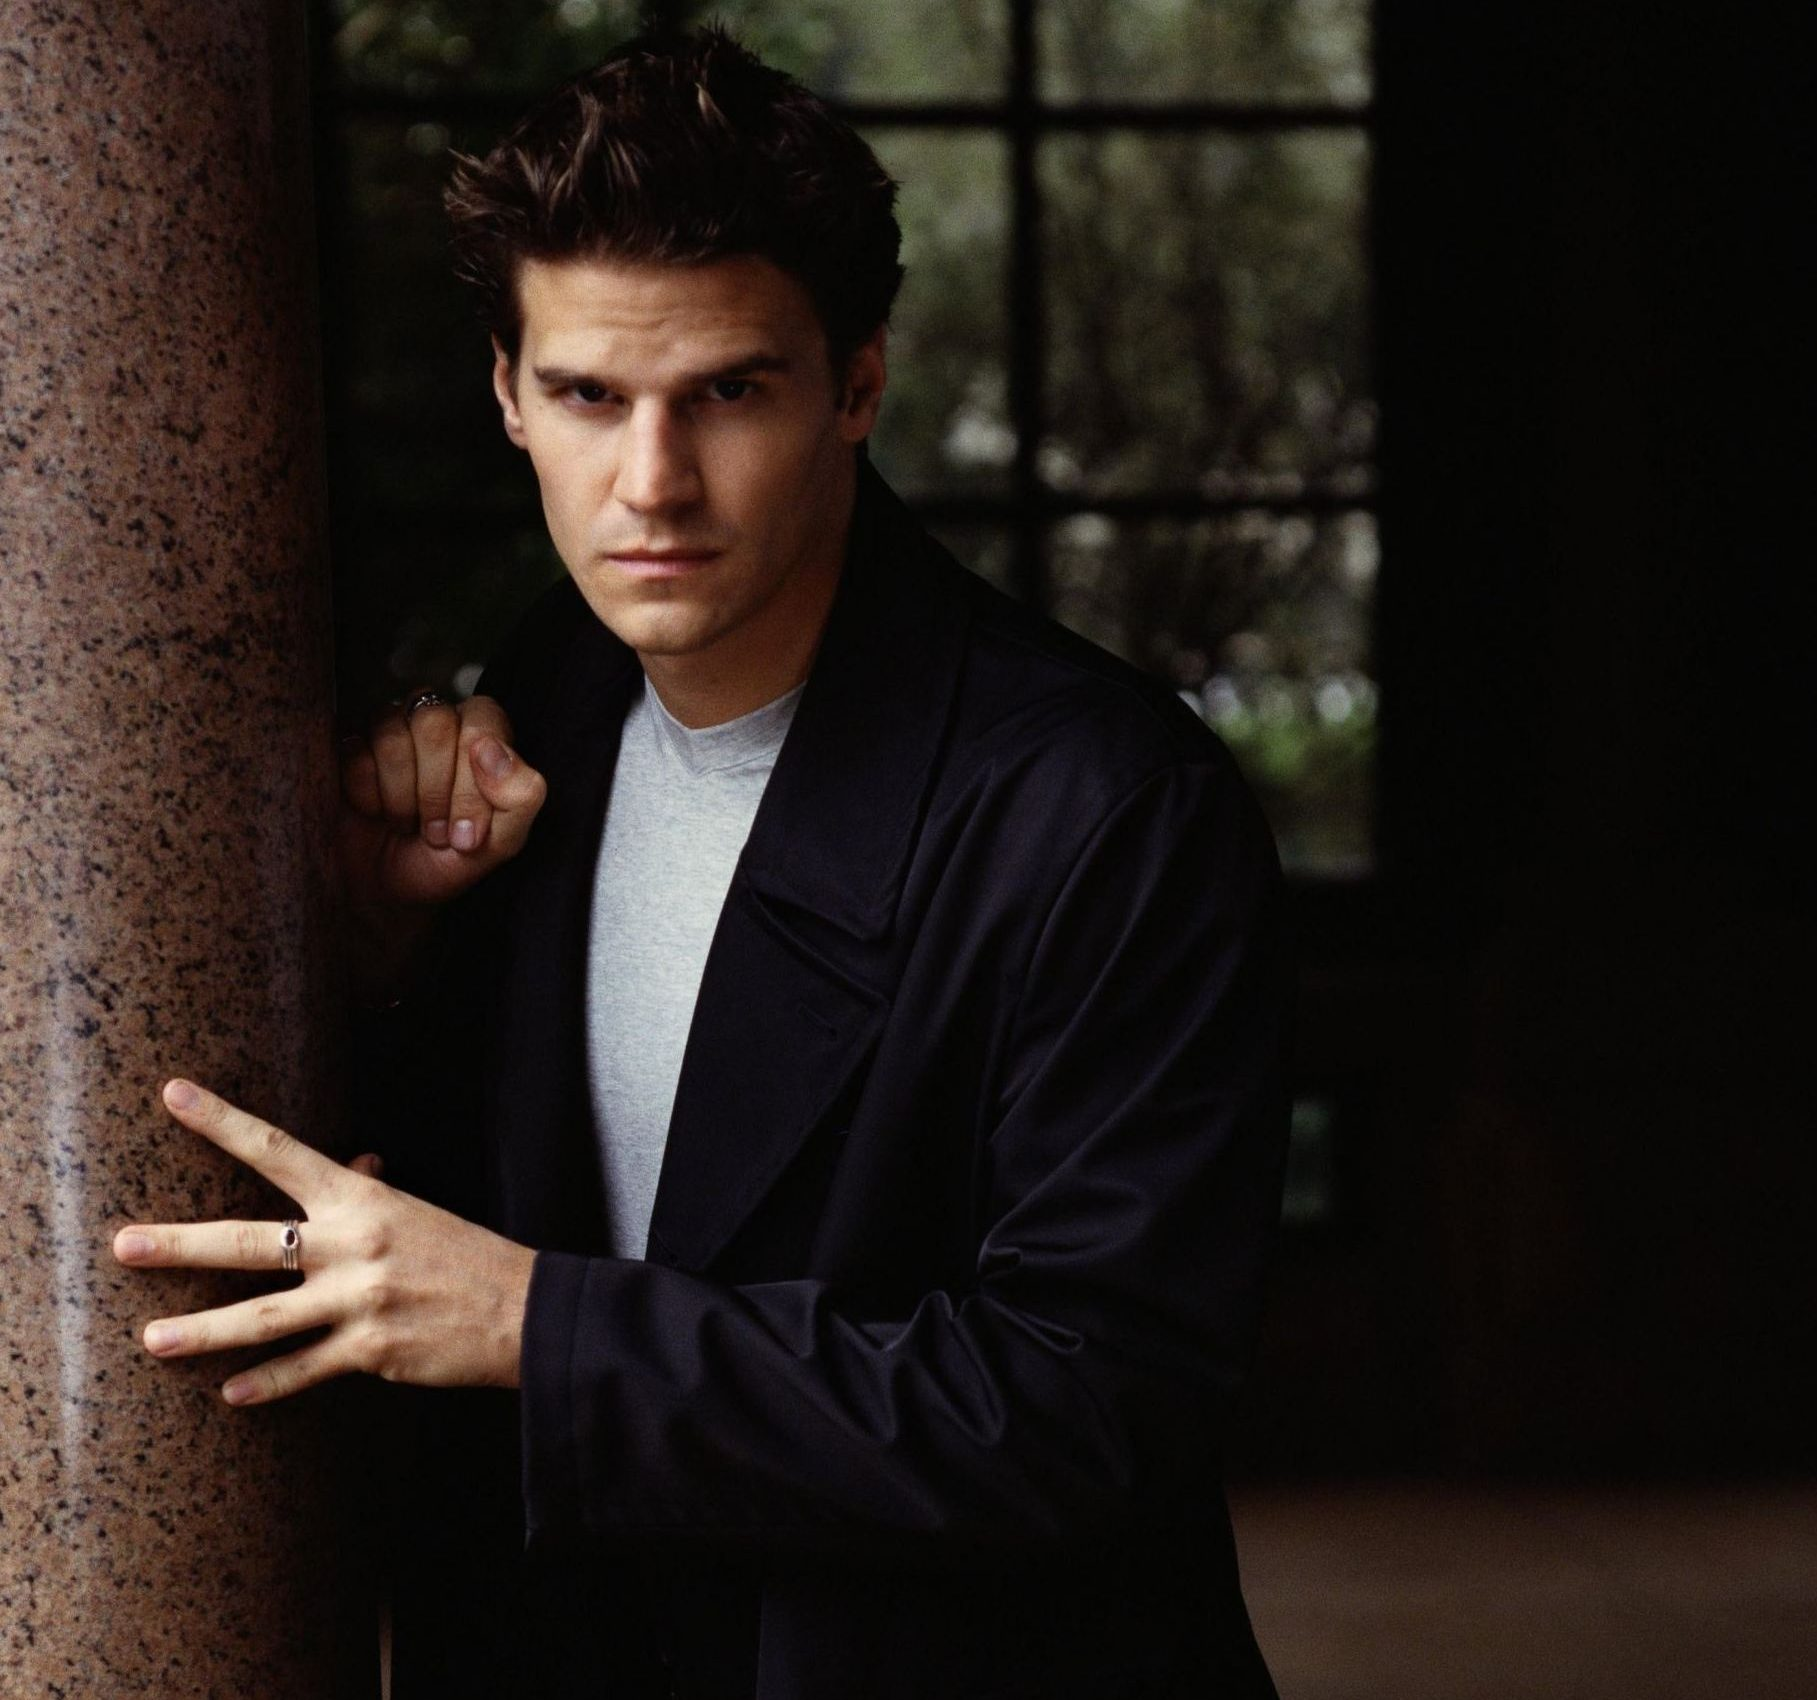 buffy angel david boreanaz dvdbash 6 e1613734364526 25 Things You Didn't Know About Buffy The Vampire Slayer